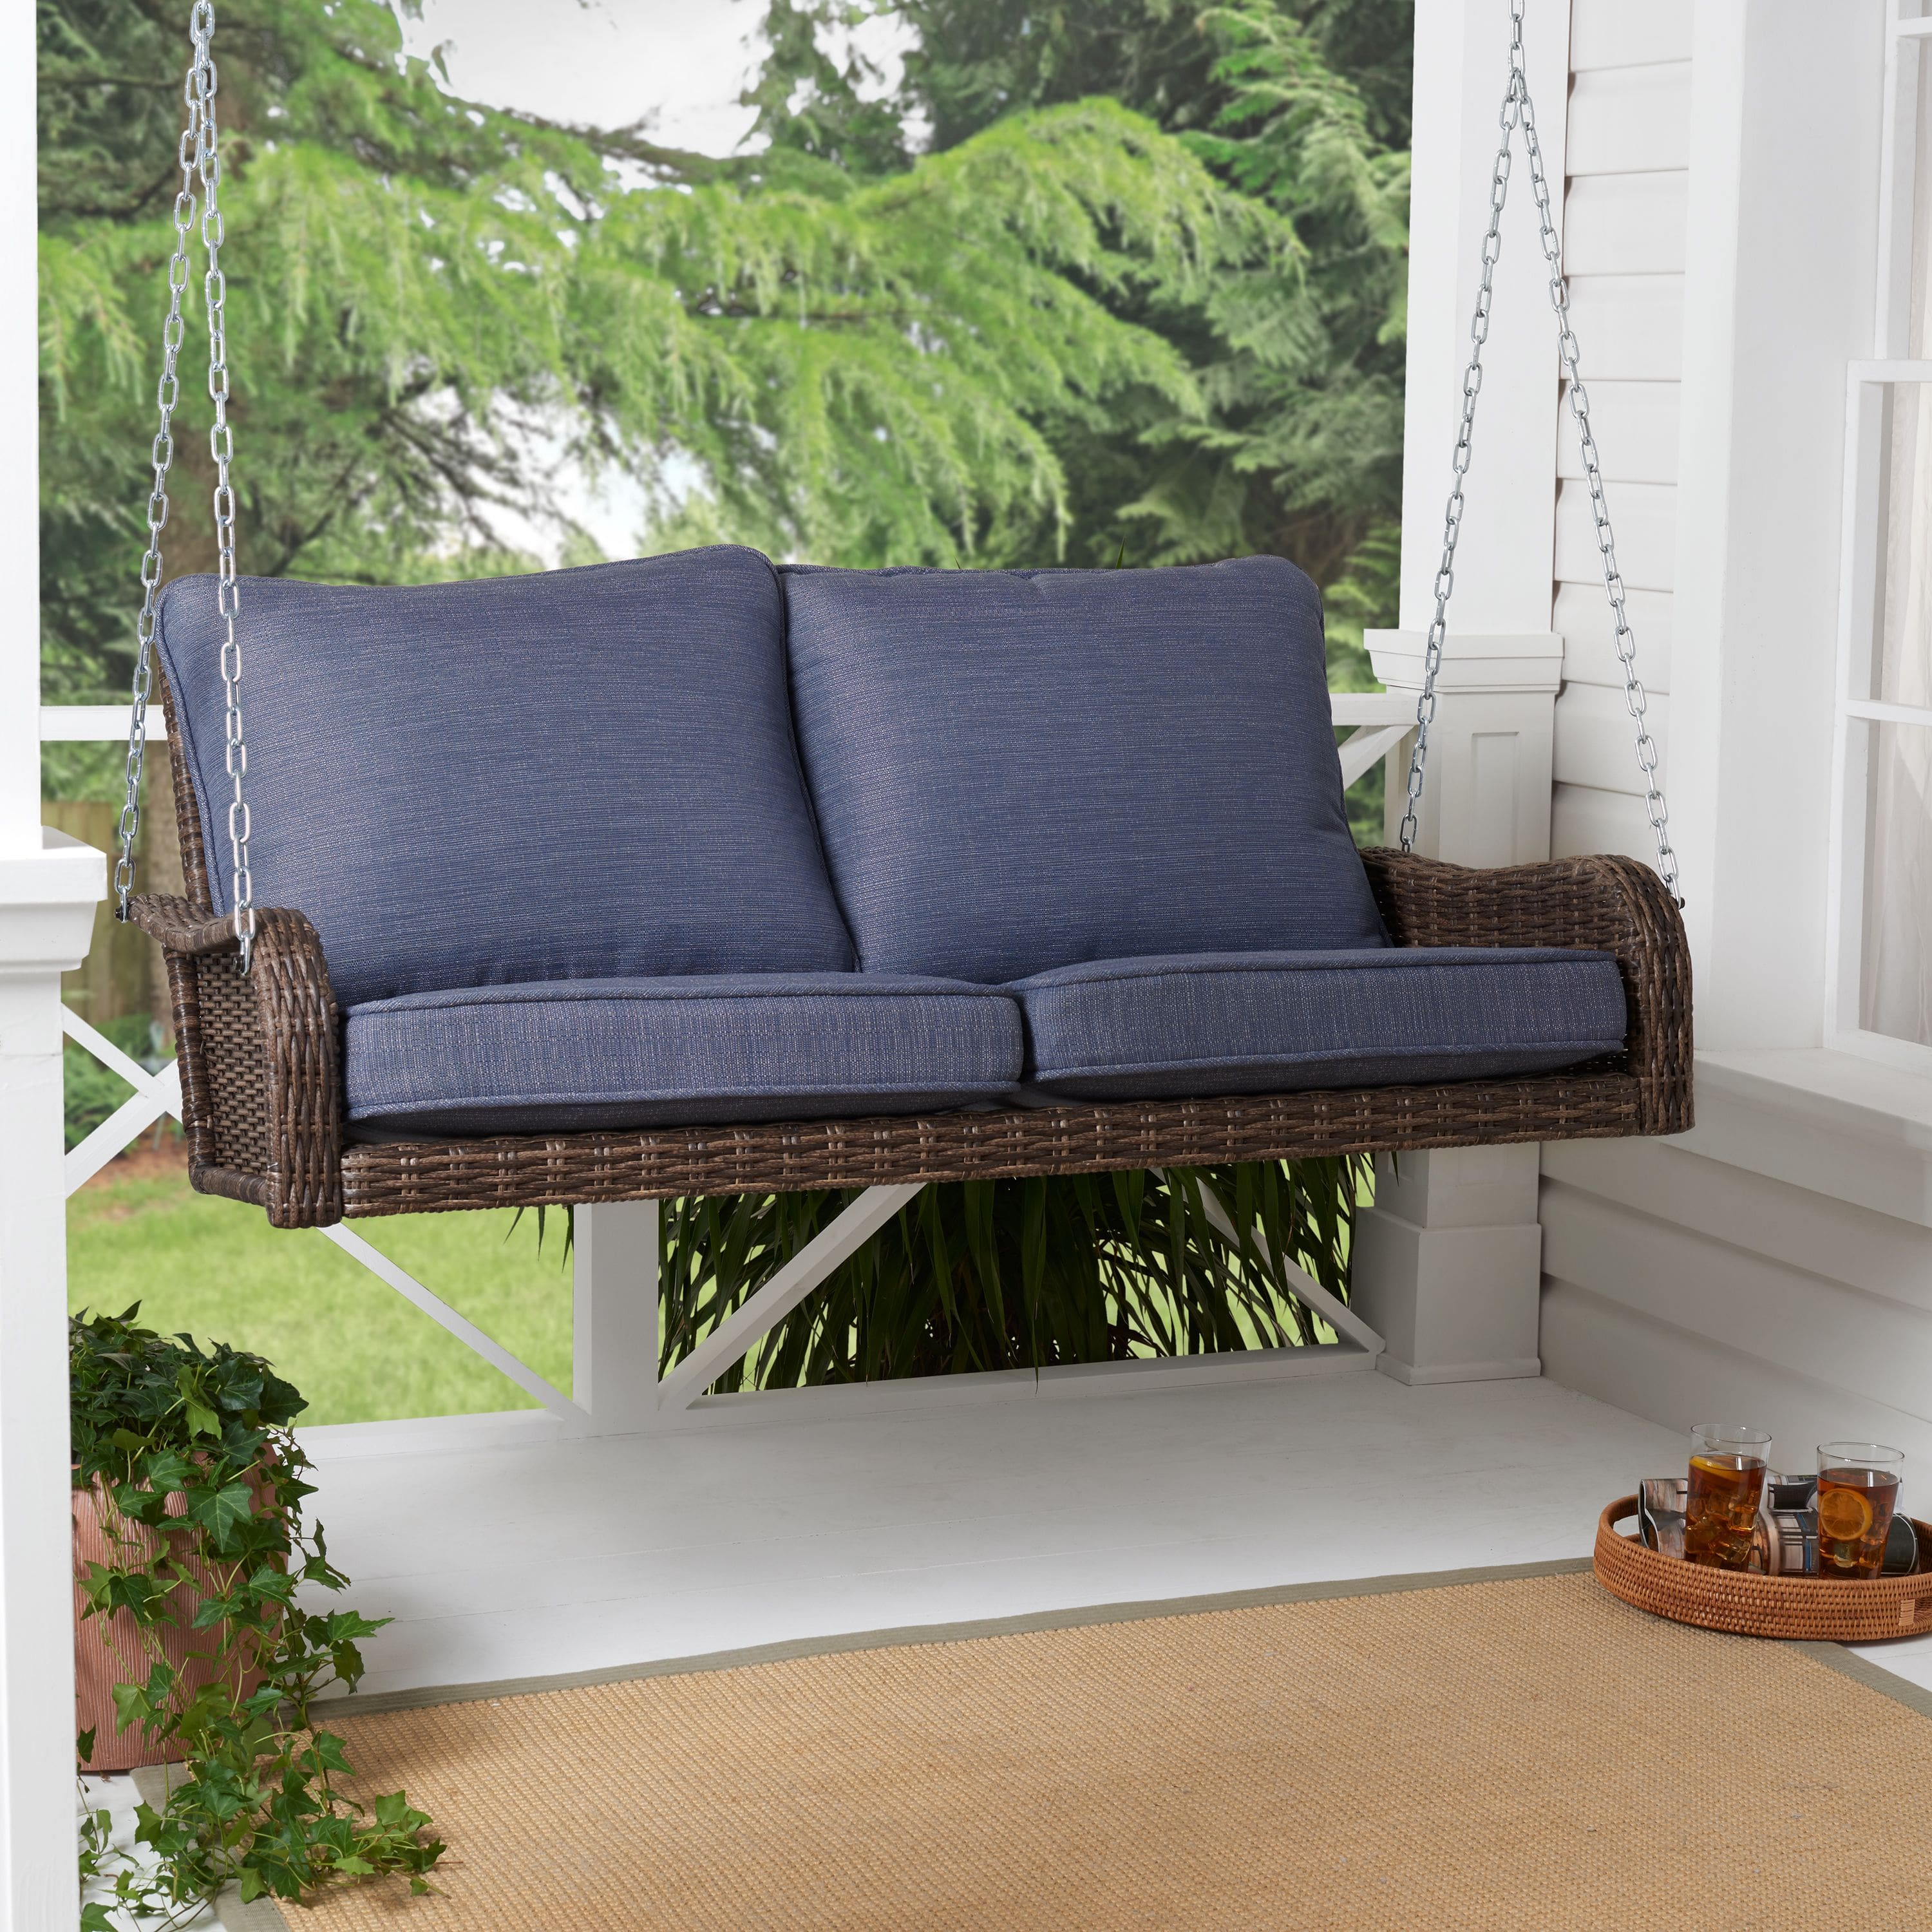 Walmart: Up to 30% Off select Patio and Porch Swings